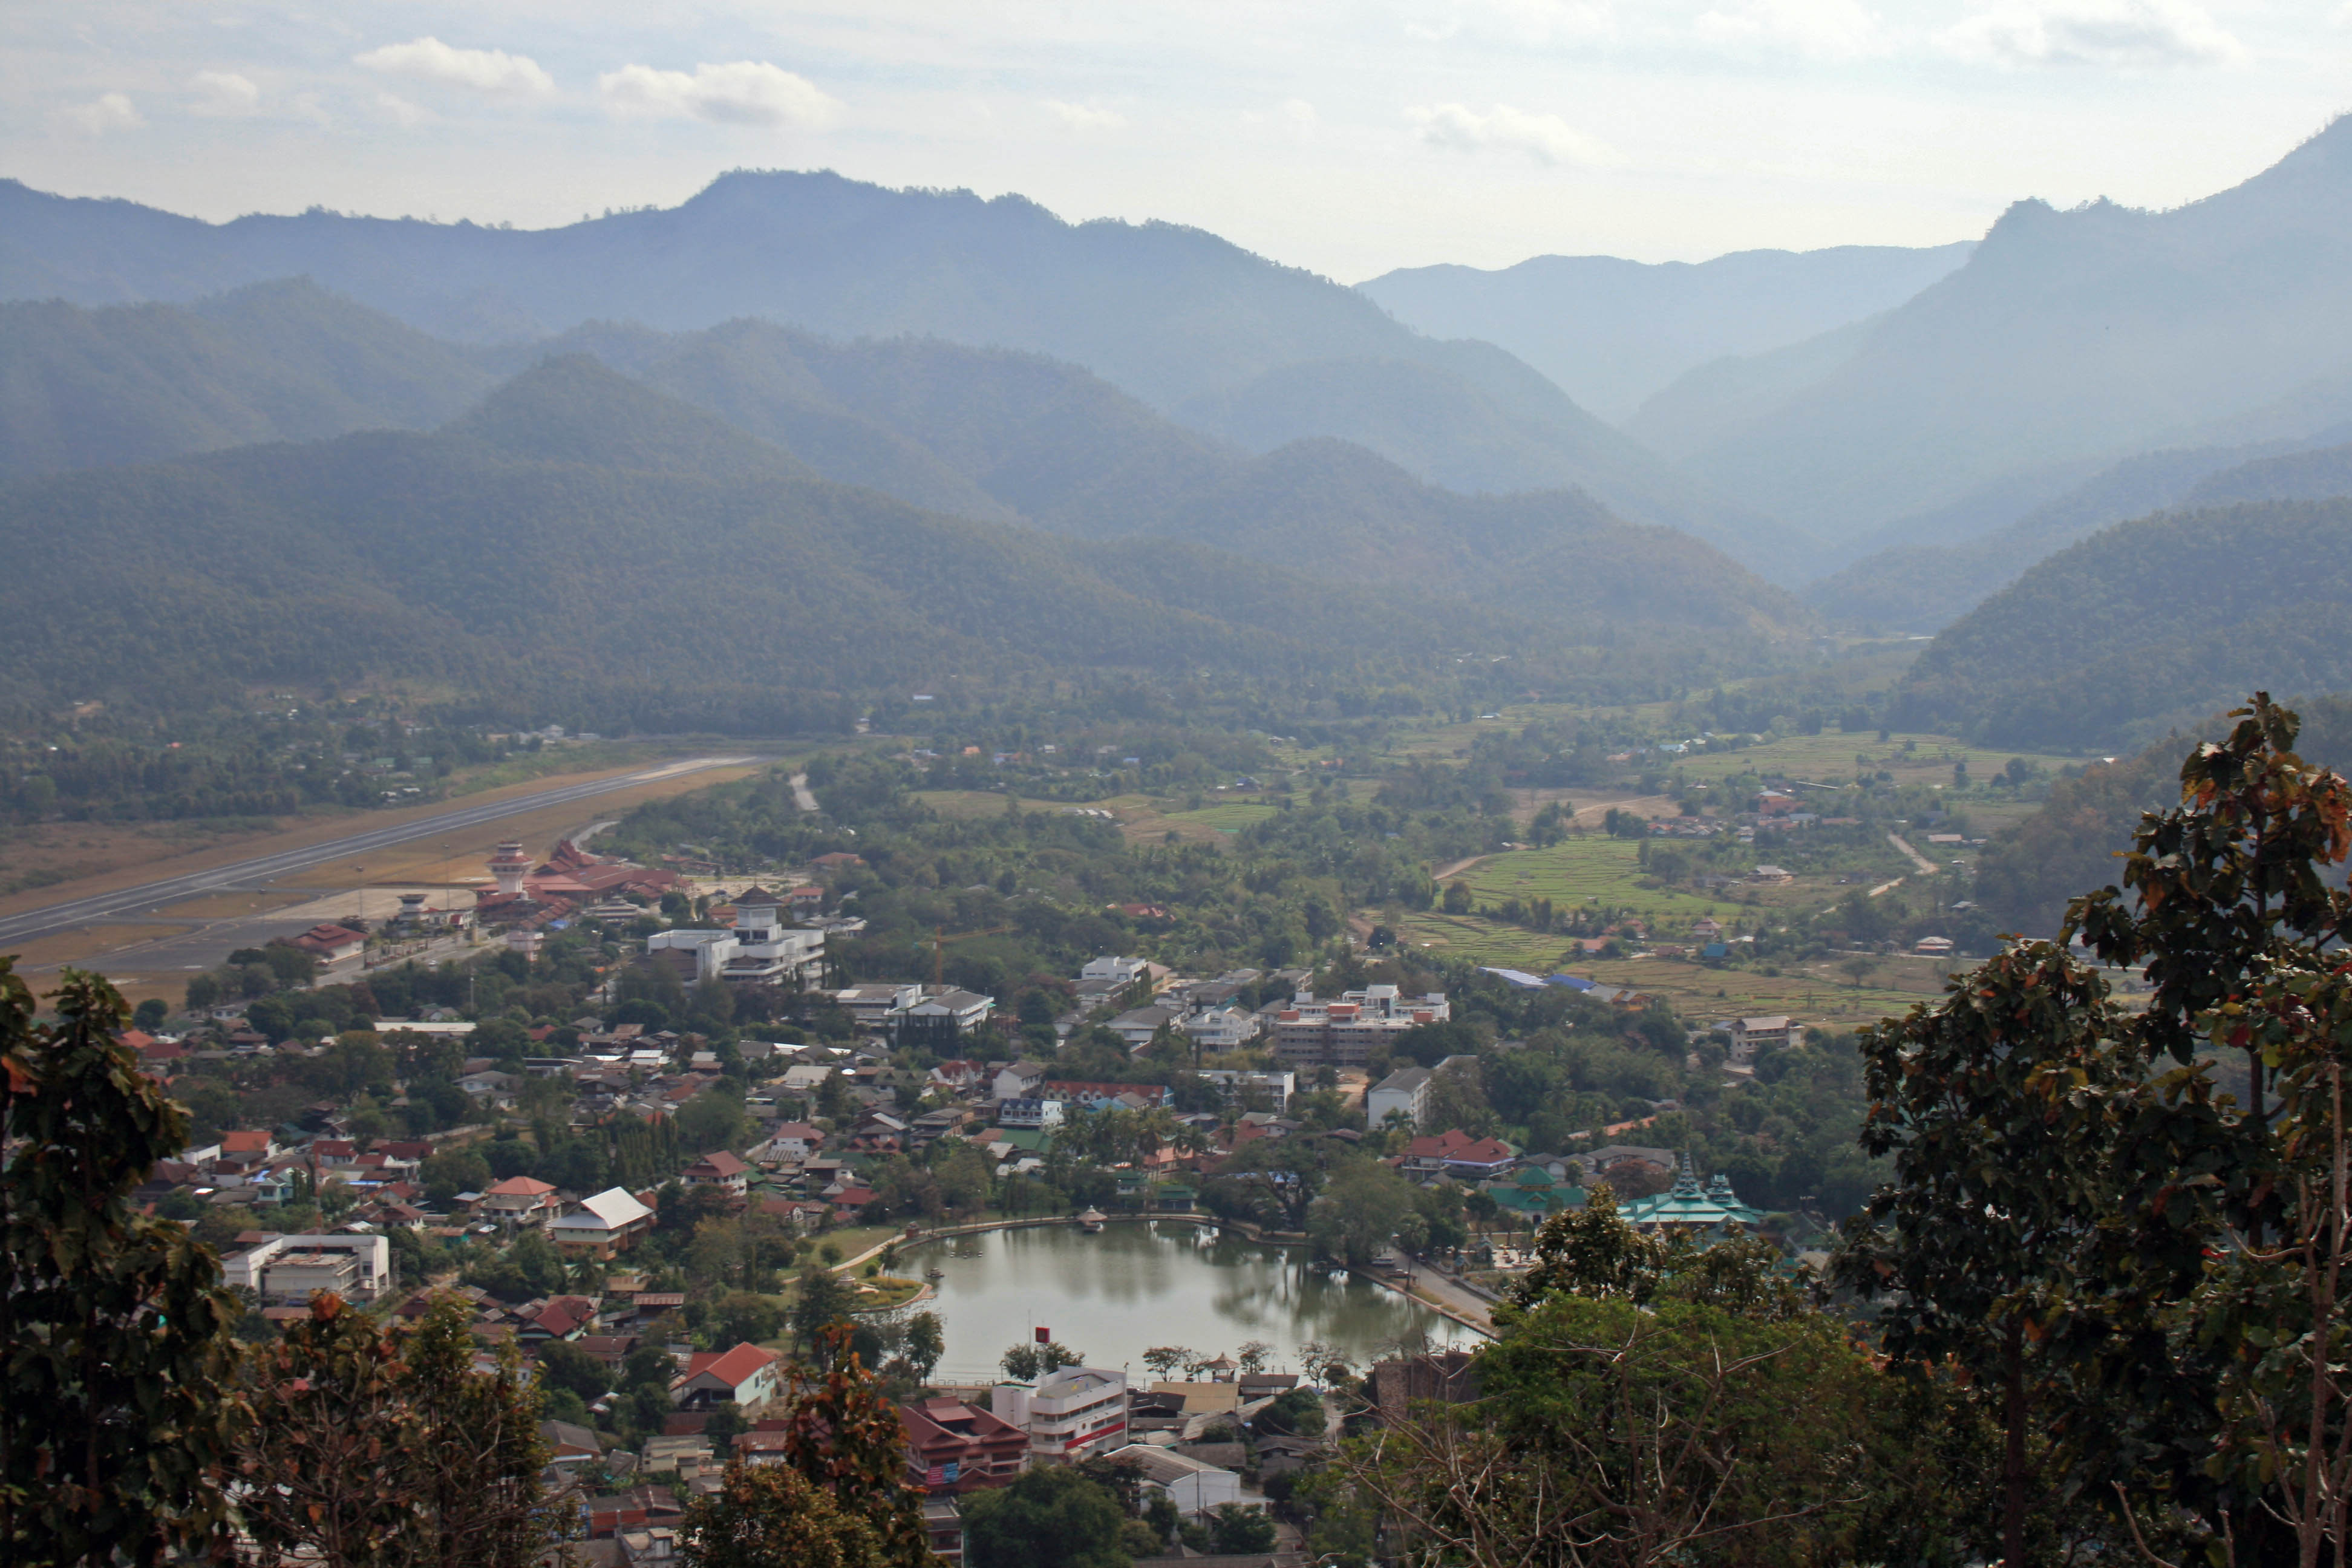 The view from up high on the hill above Mae Hong Son.